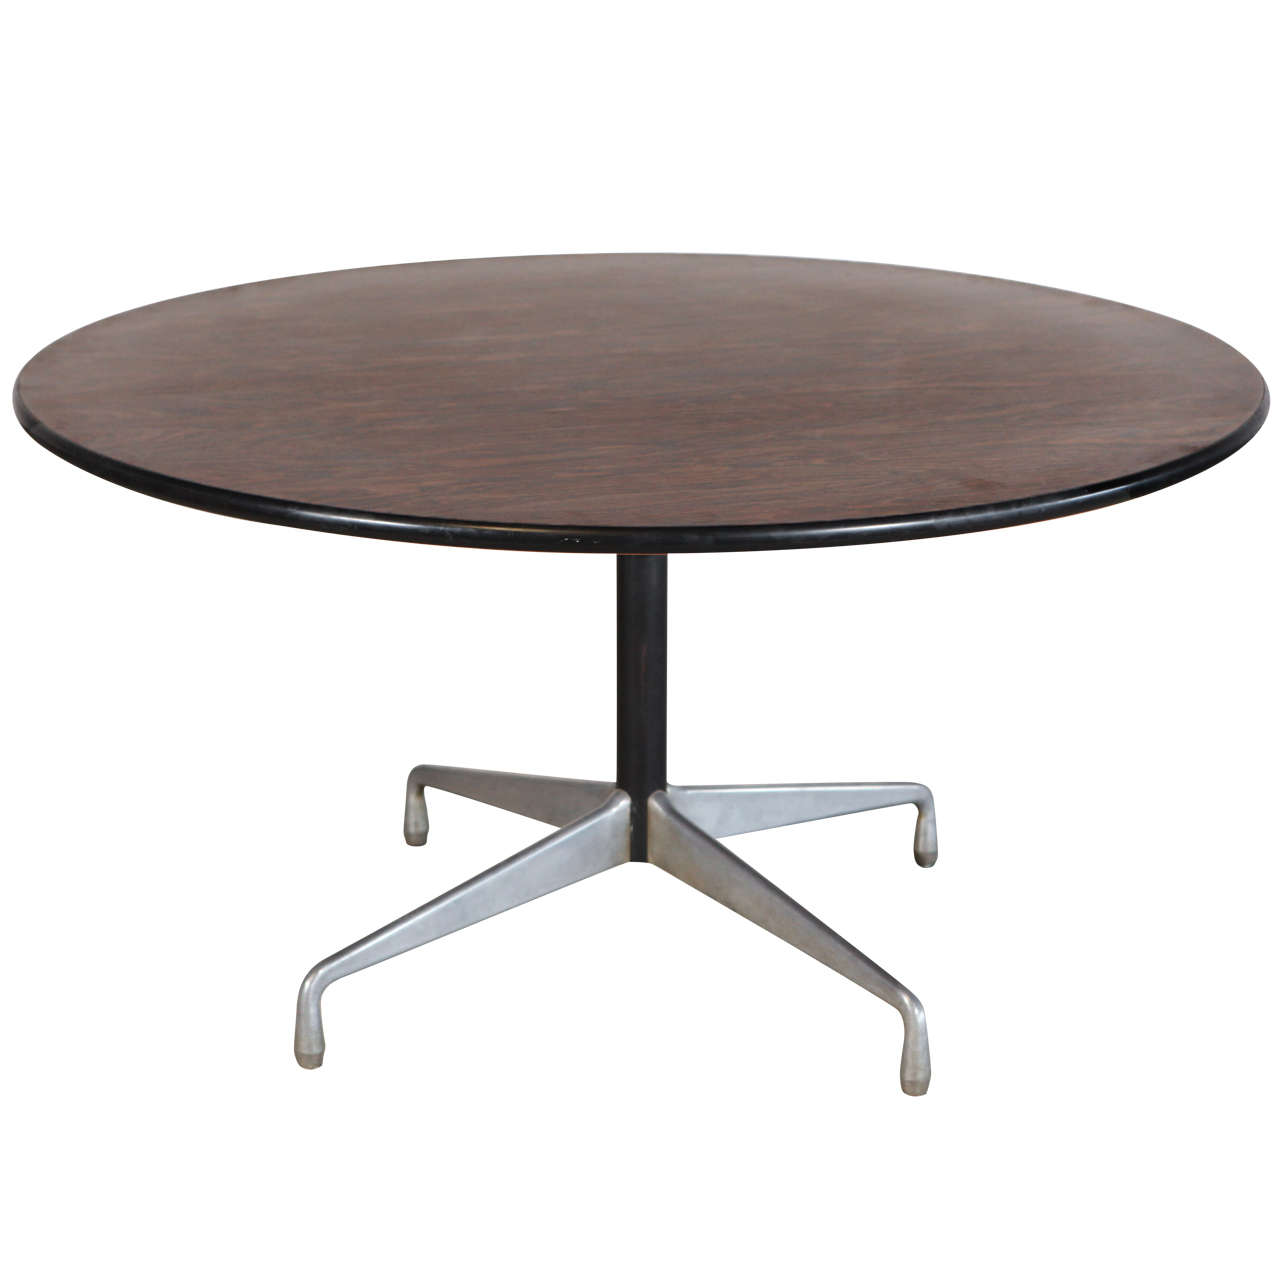 charles and ray eames rosewood top center table at 1stdibs. Black Bedroom Furniture Sets. Home Design Ideas